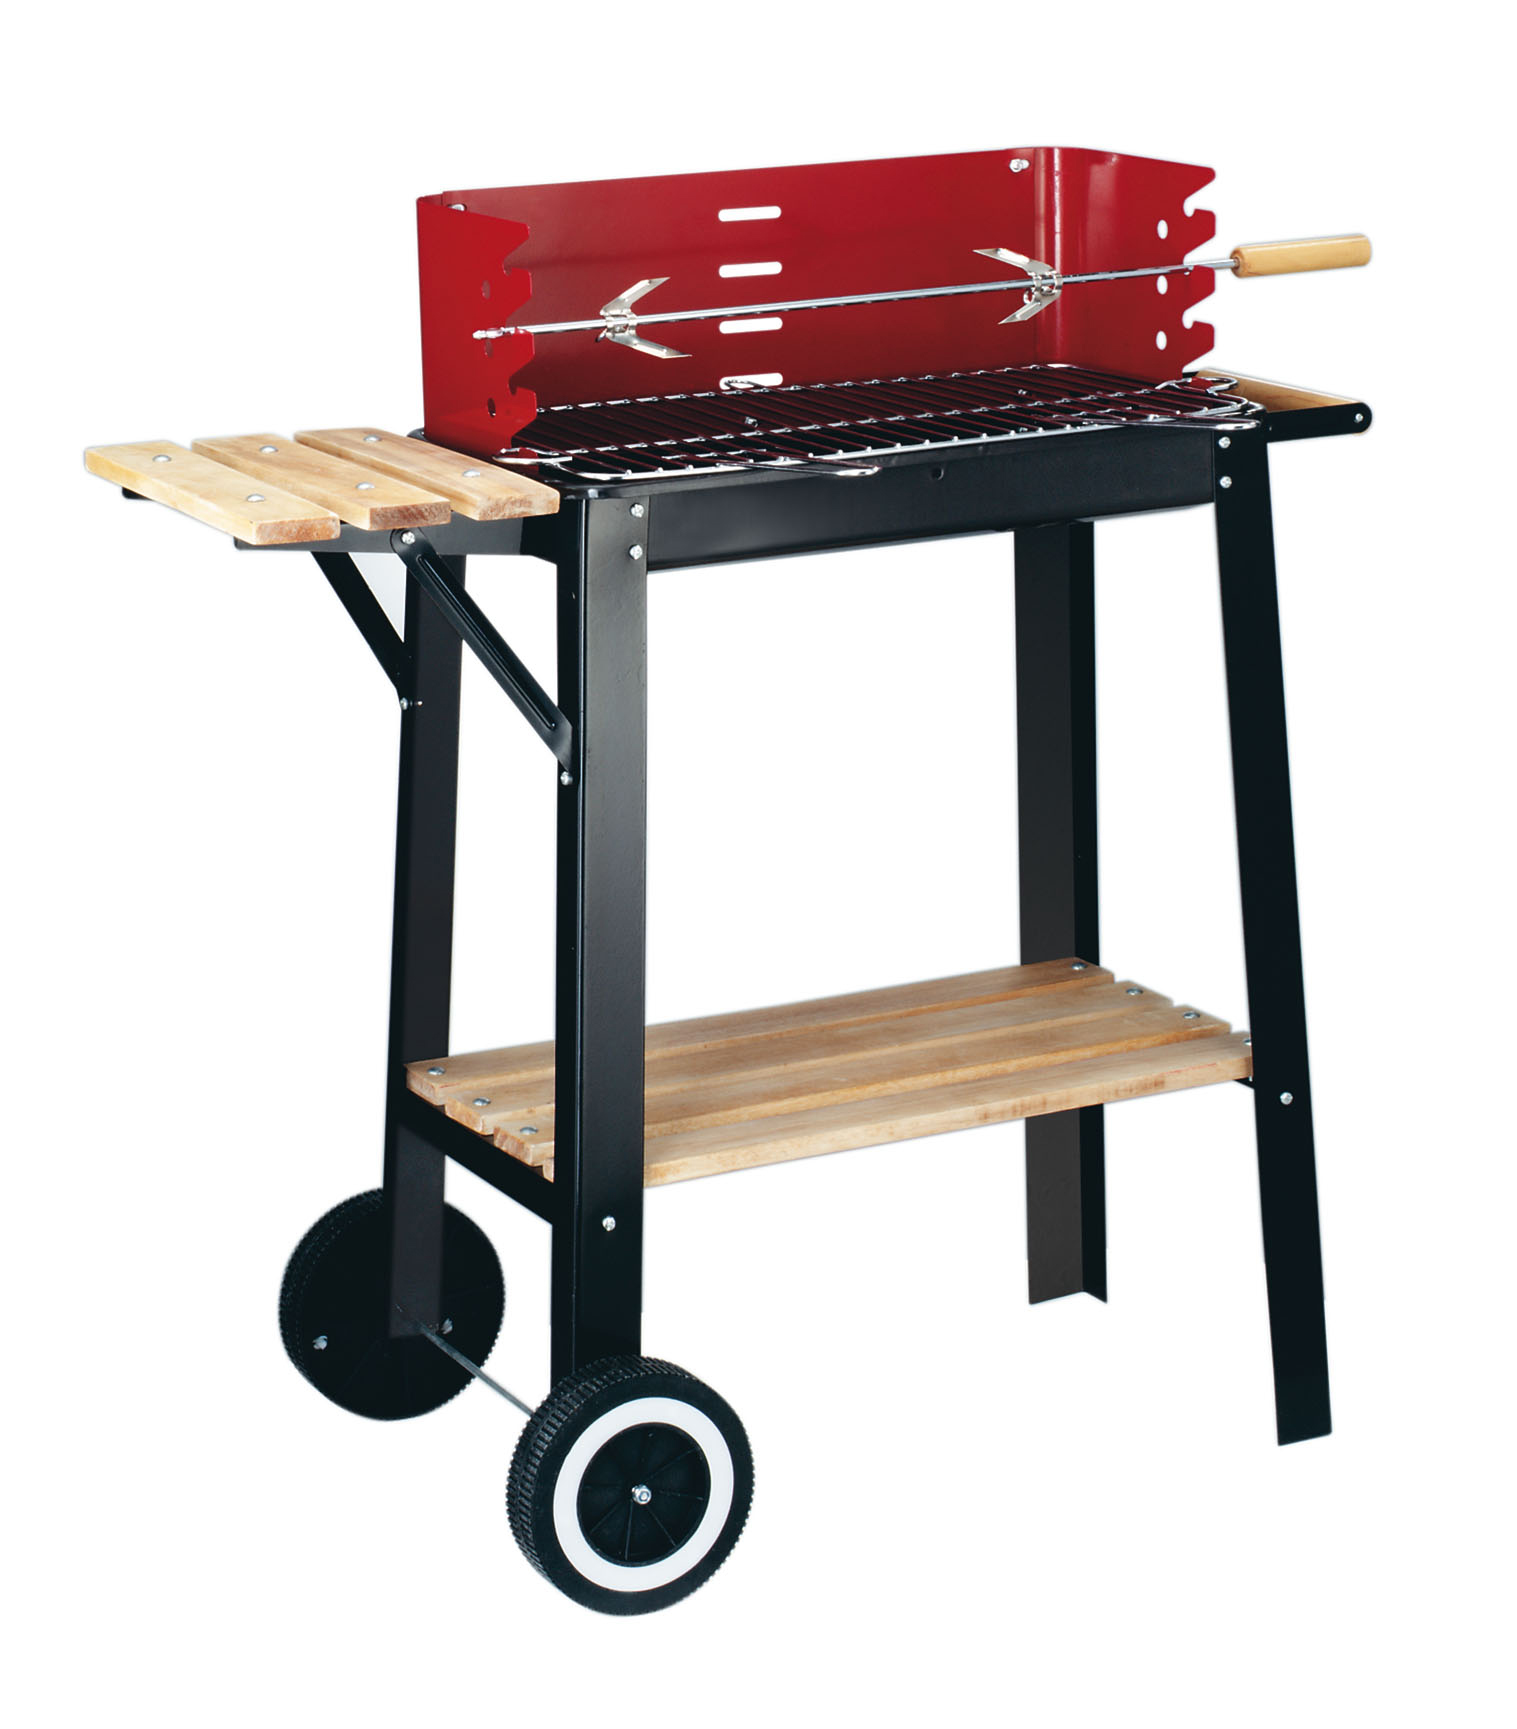 GARDEN GRILL HOUTSKOOL BARBECUE RED LINE COMPACTE